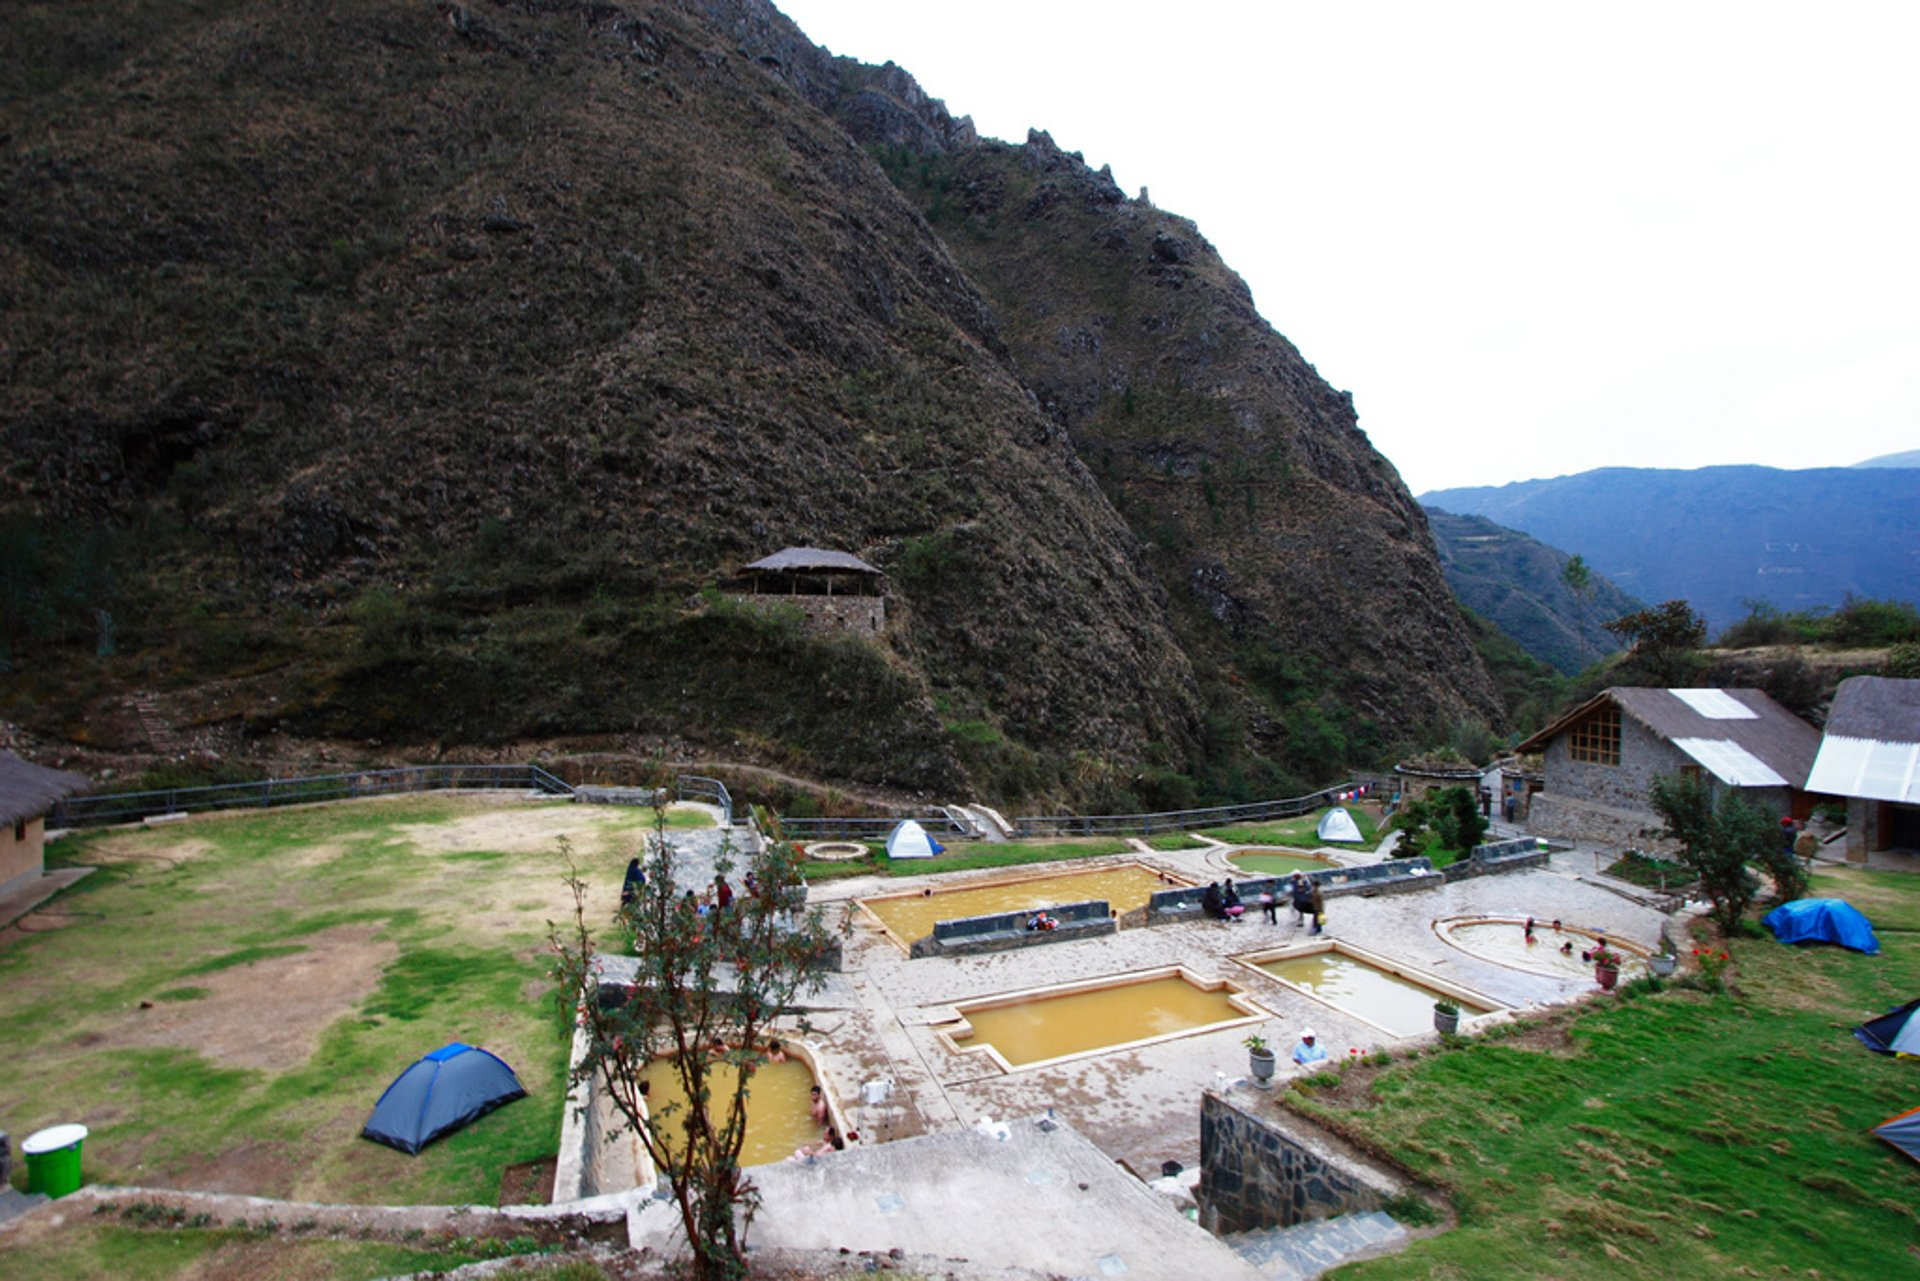 Hot Springs in Peru 2020 - Best Time